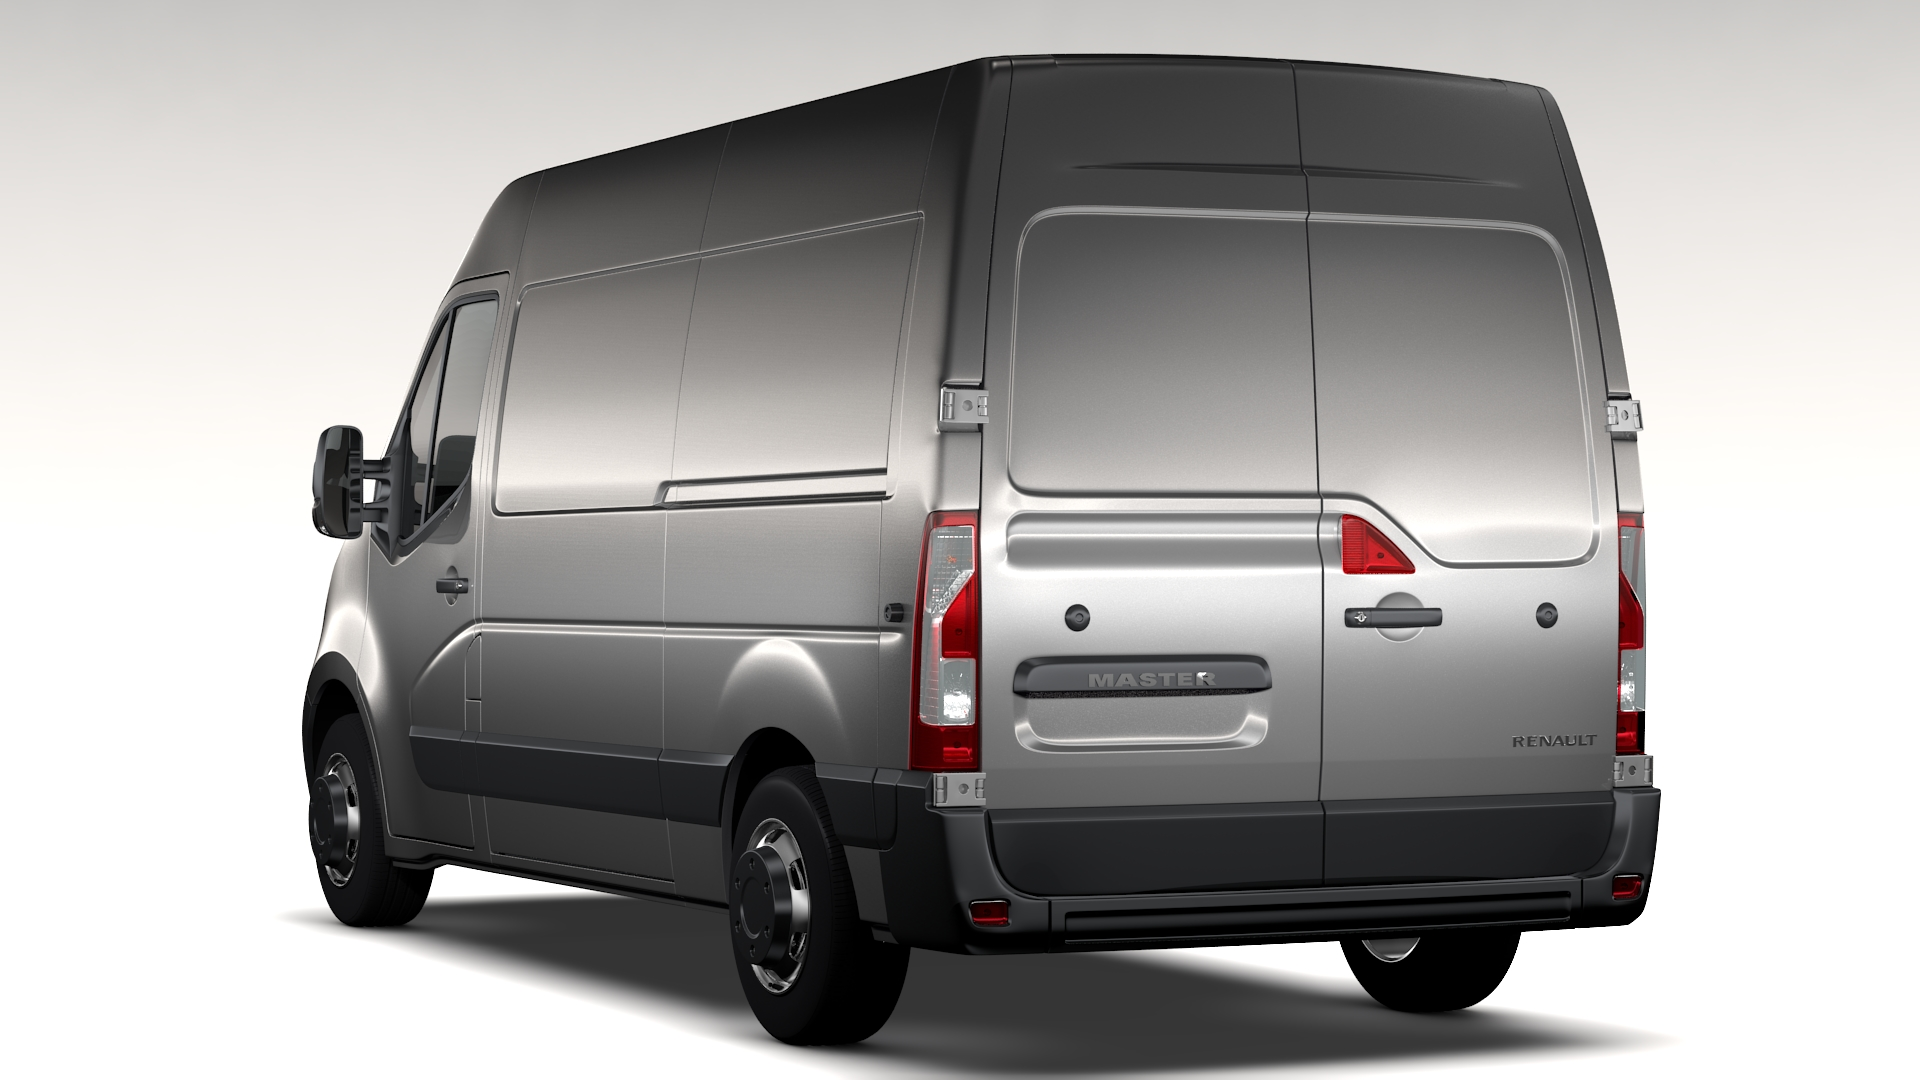 renault master l2h2 van 2010 3d model buy renault master. Black Bedroom Furniture Sets. Home Design Ideas